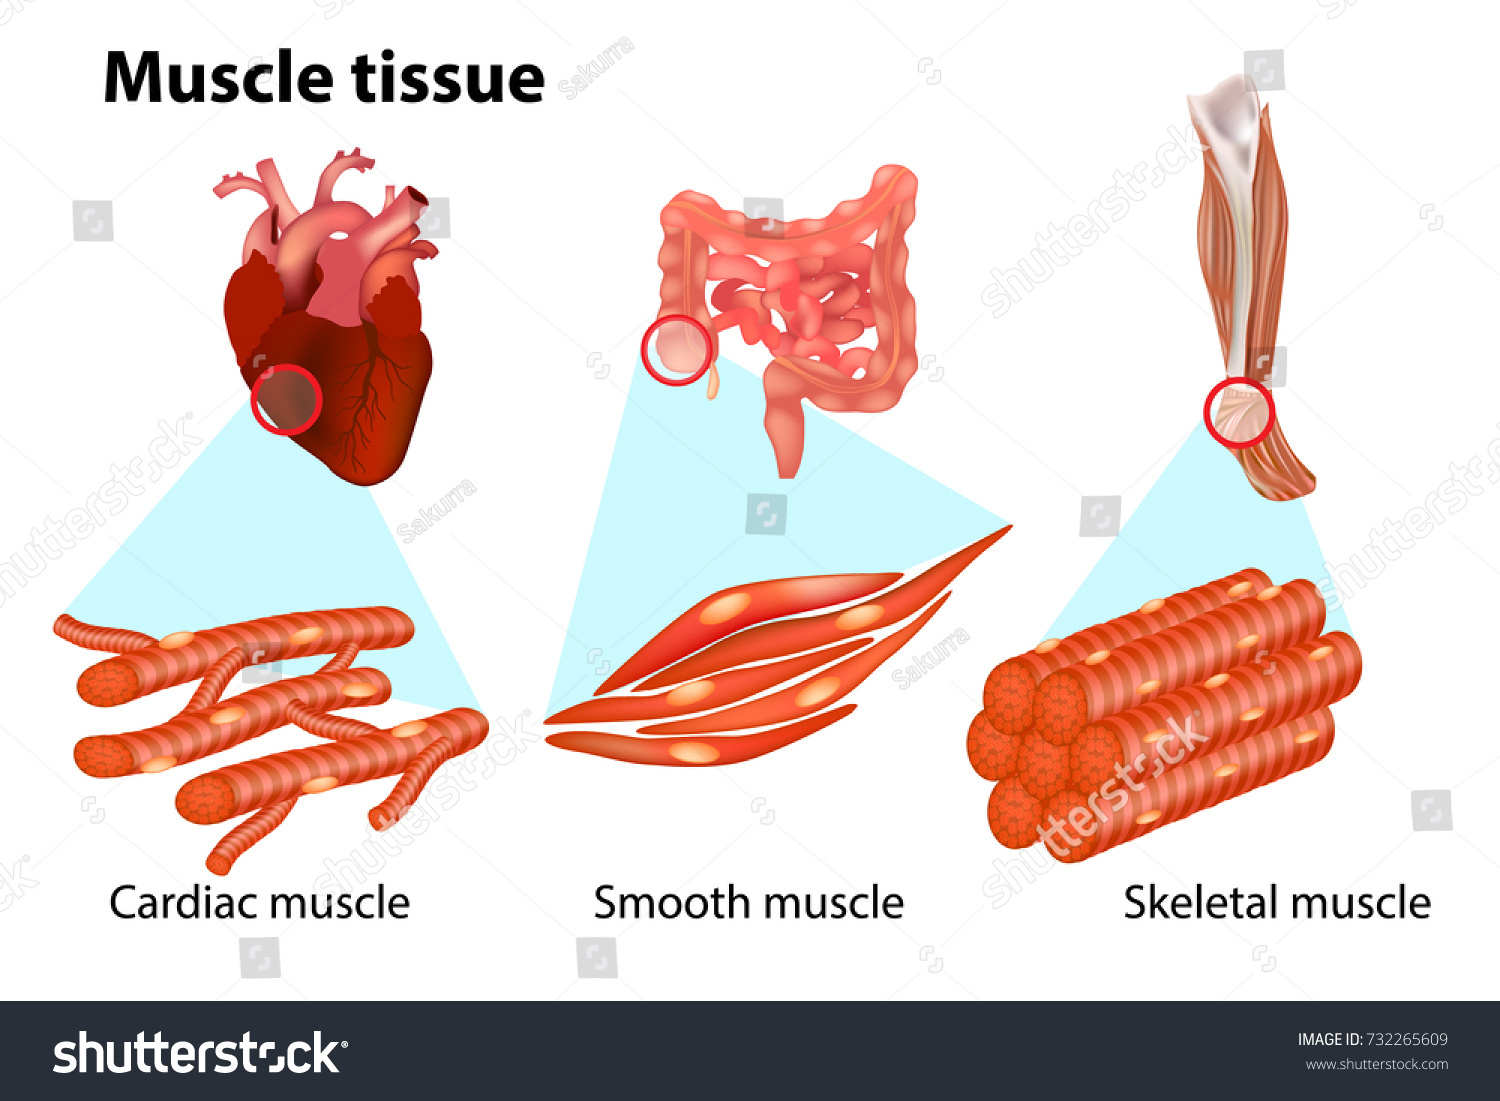 THREE TYPES MUSCLE TISSUE Anatomy Muscular Stock Vector 732265609 ...